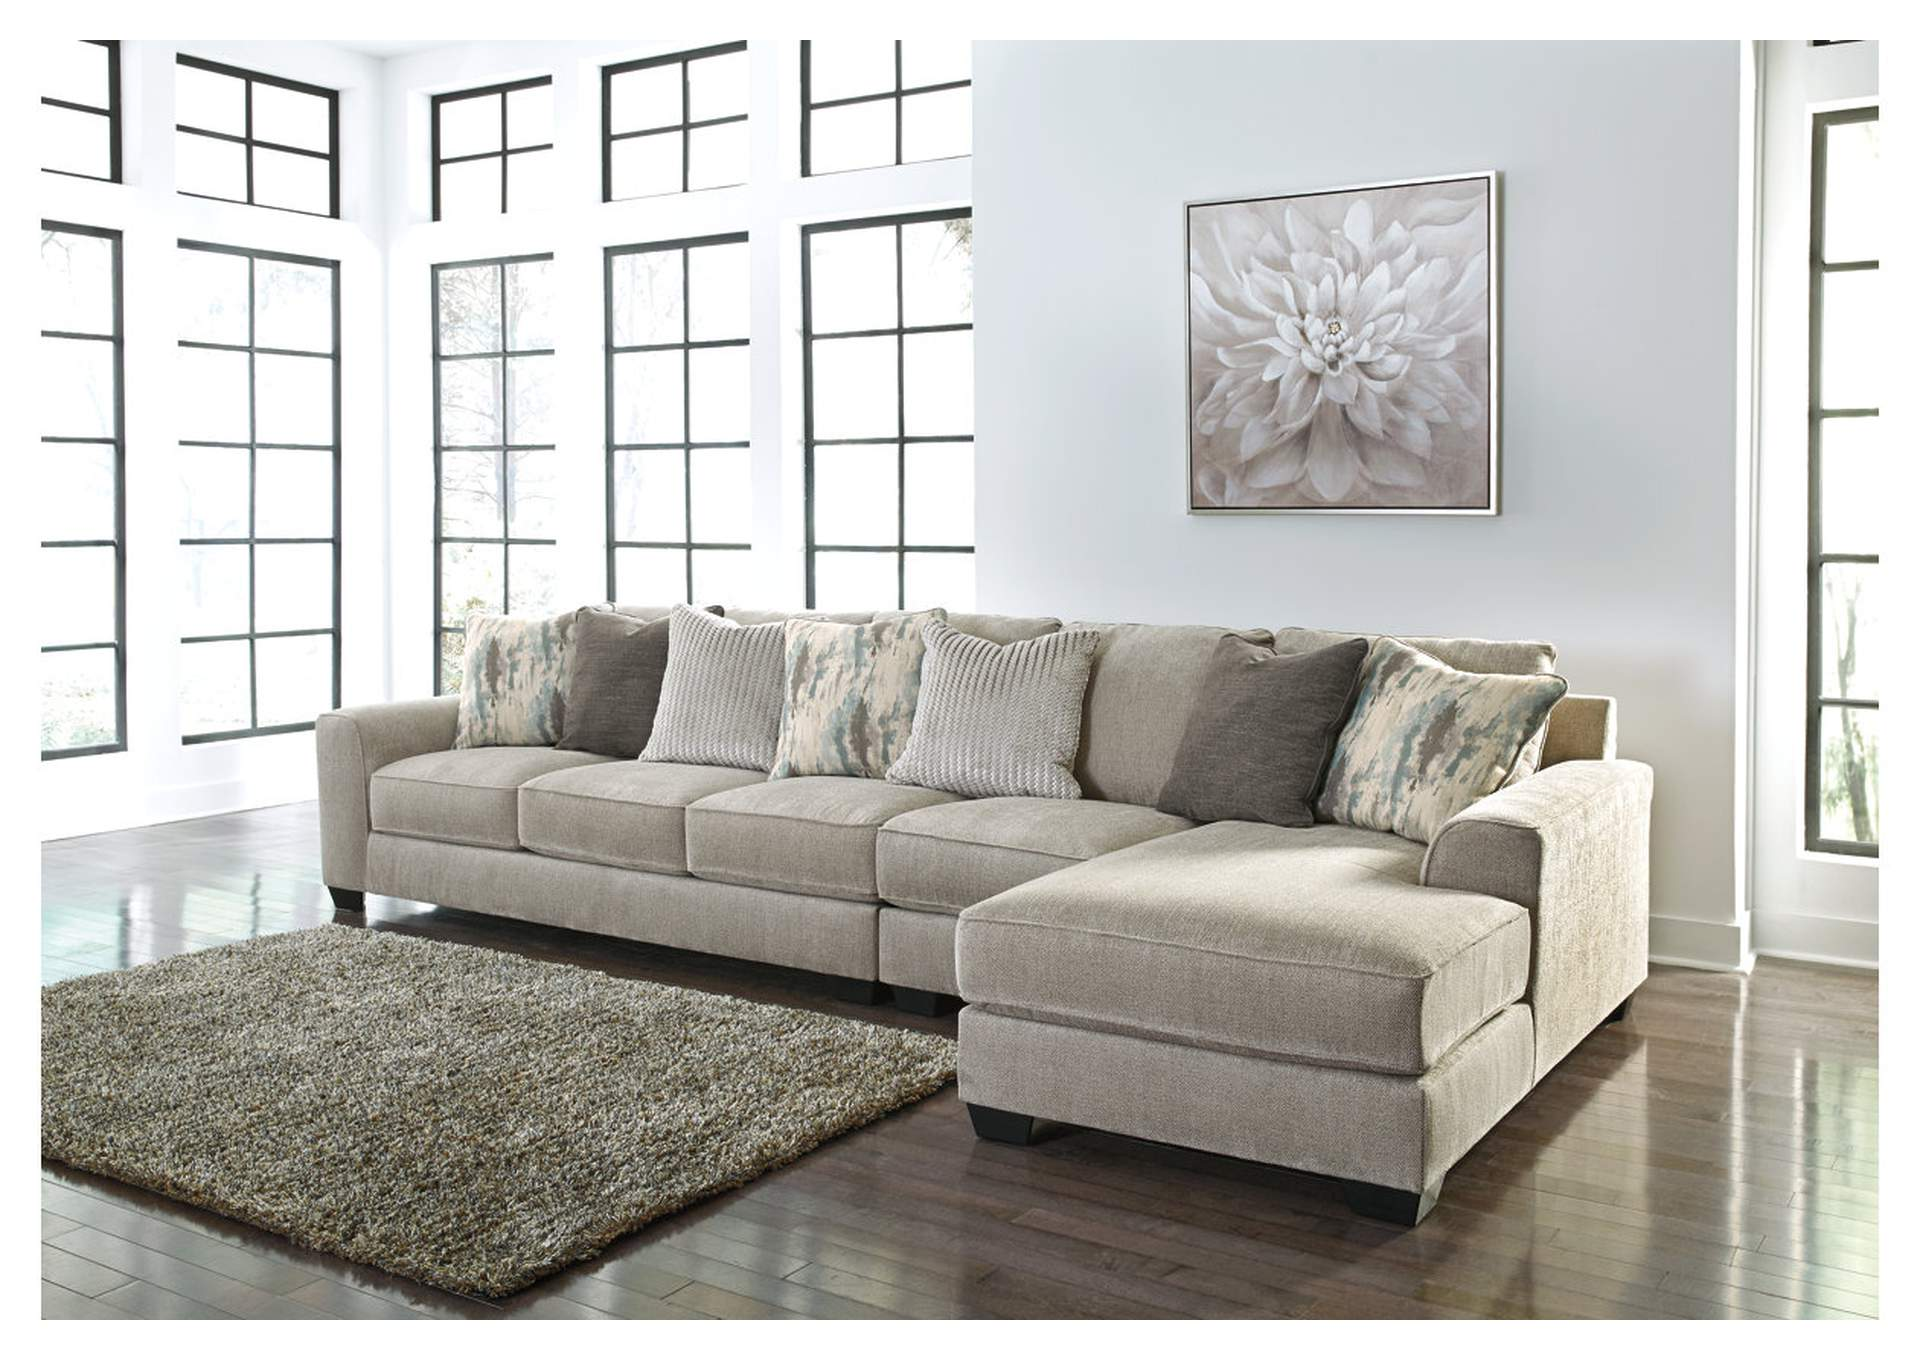 Ardsley Pewter 3 Piece RAF Chaise Sectional,Benchcraft